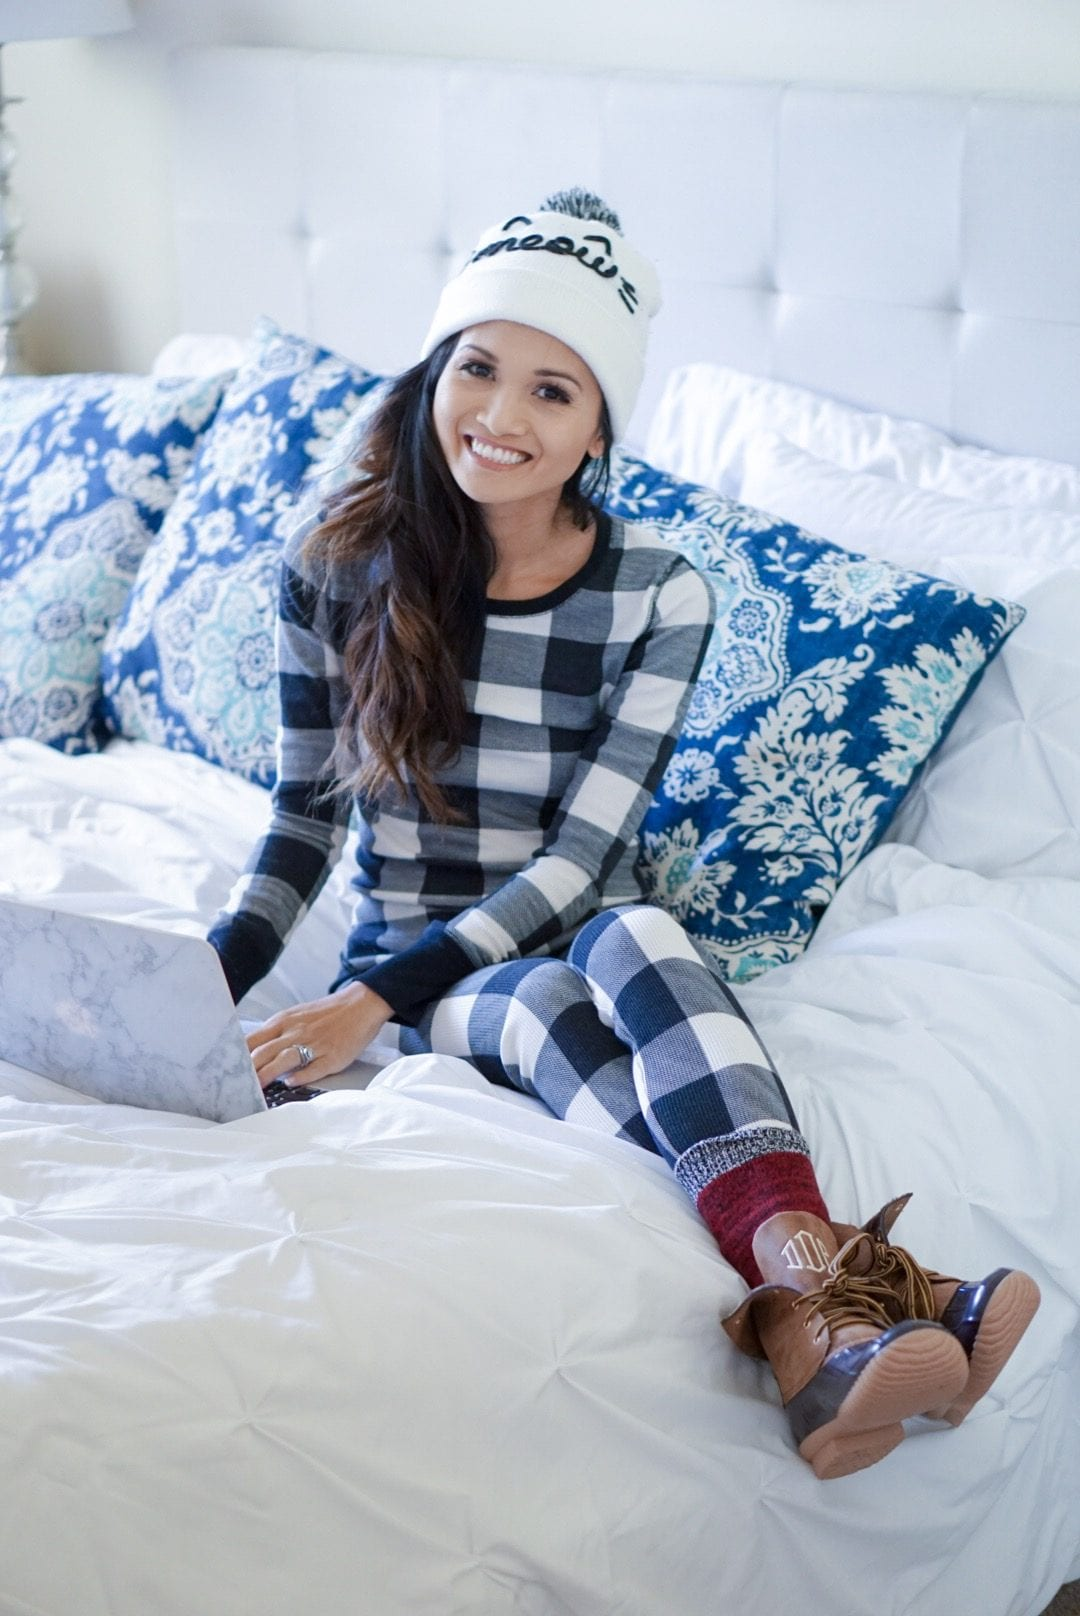 2017 Holiday Gift Guides , gift guide for her, gift guide for toddlers, gifts for the home, gifts for beauty lovers, beauty gift guide, gifts under $50, gifts for pet lovers, gifts for the traveler, fitness gear for the new year, gifts for the fitness enthusiast, buffalo plaid pjs, #oldnavystye